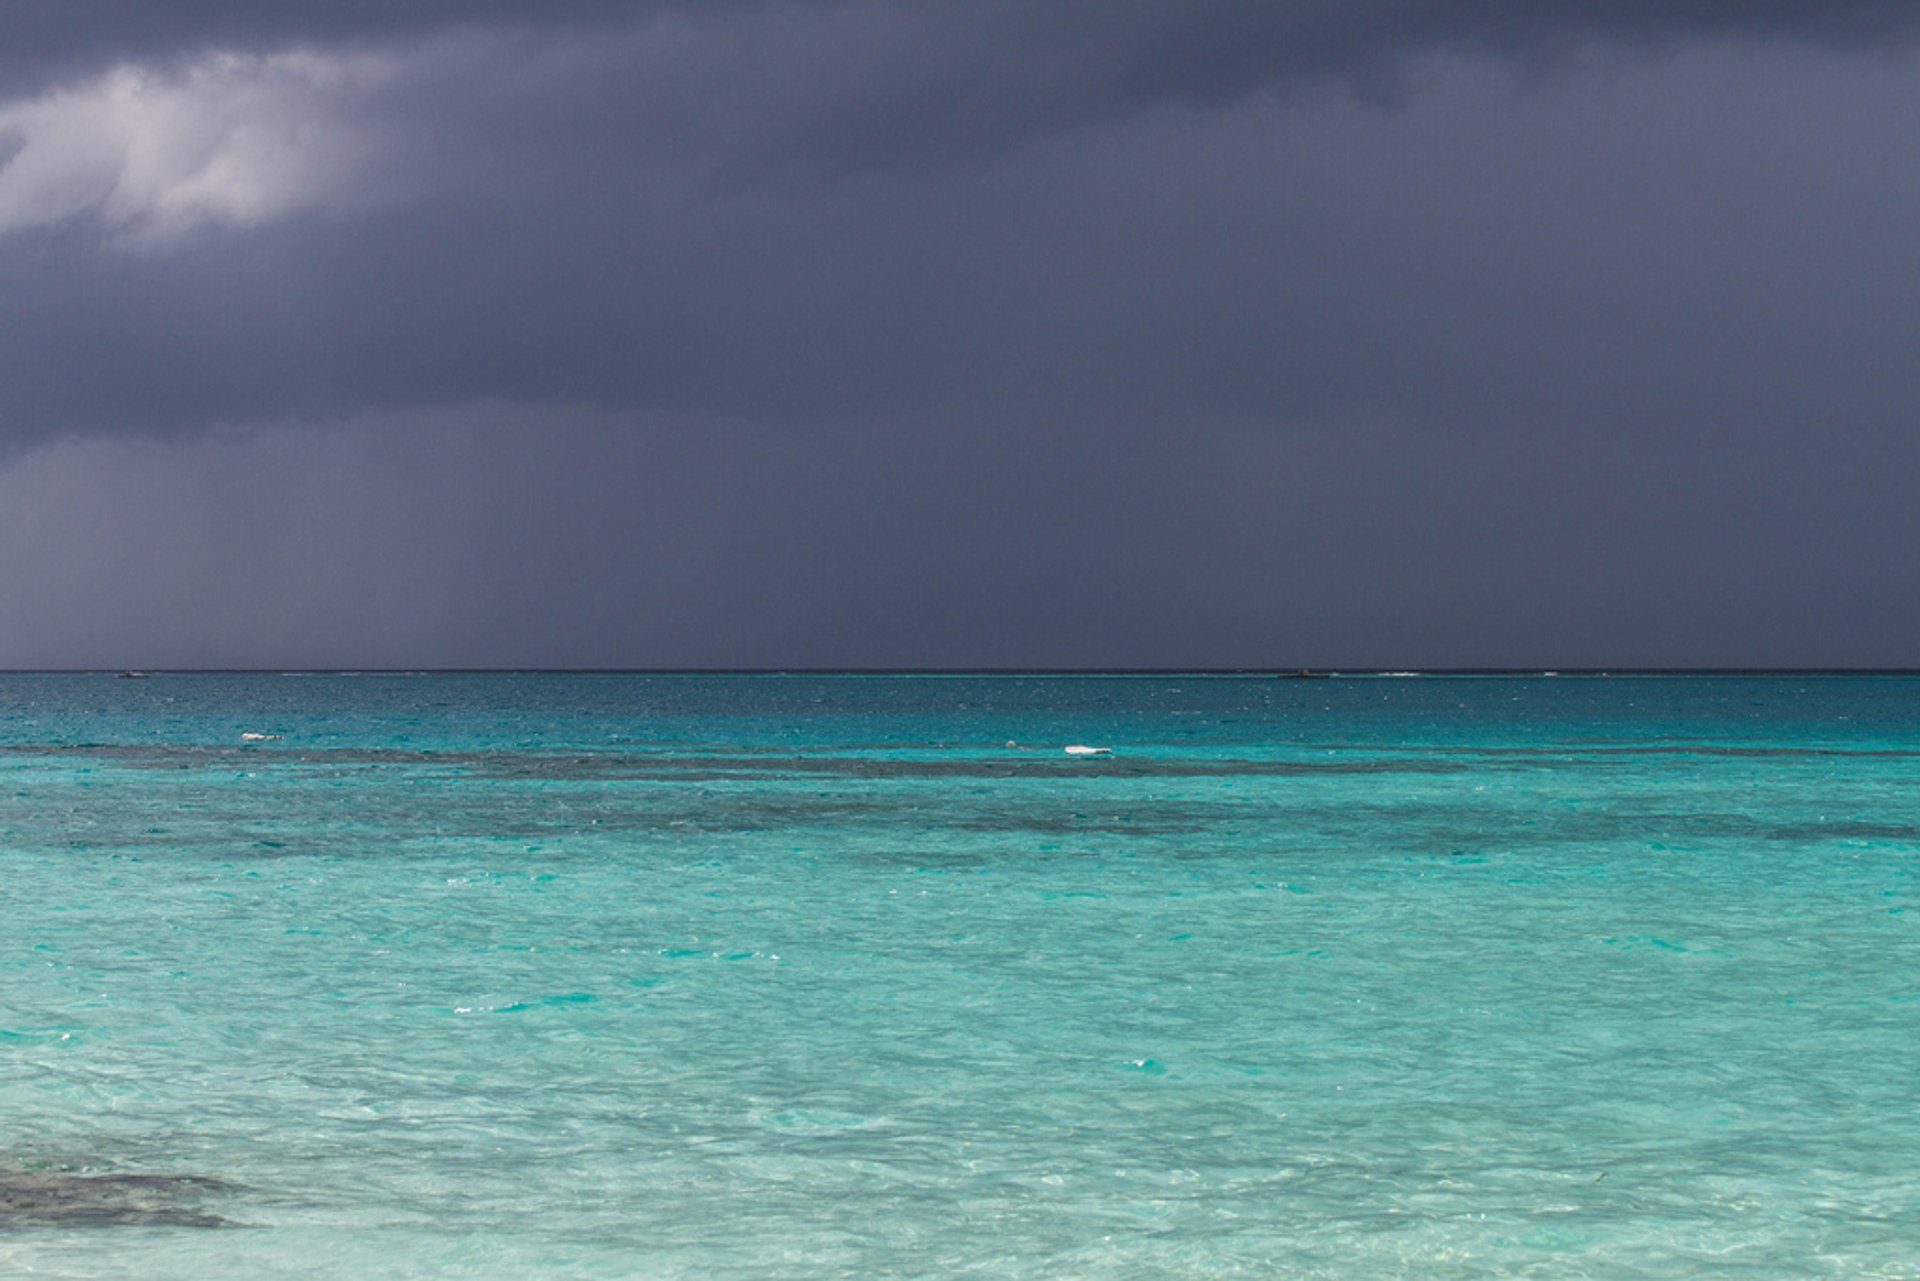 Wet Season (Southwest Monsoon) in Maldives - Best Season